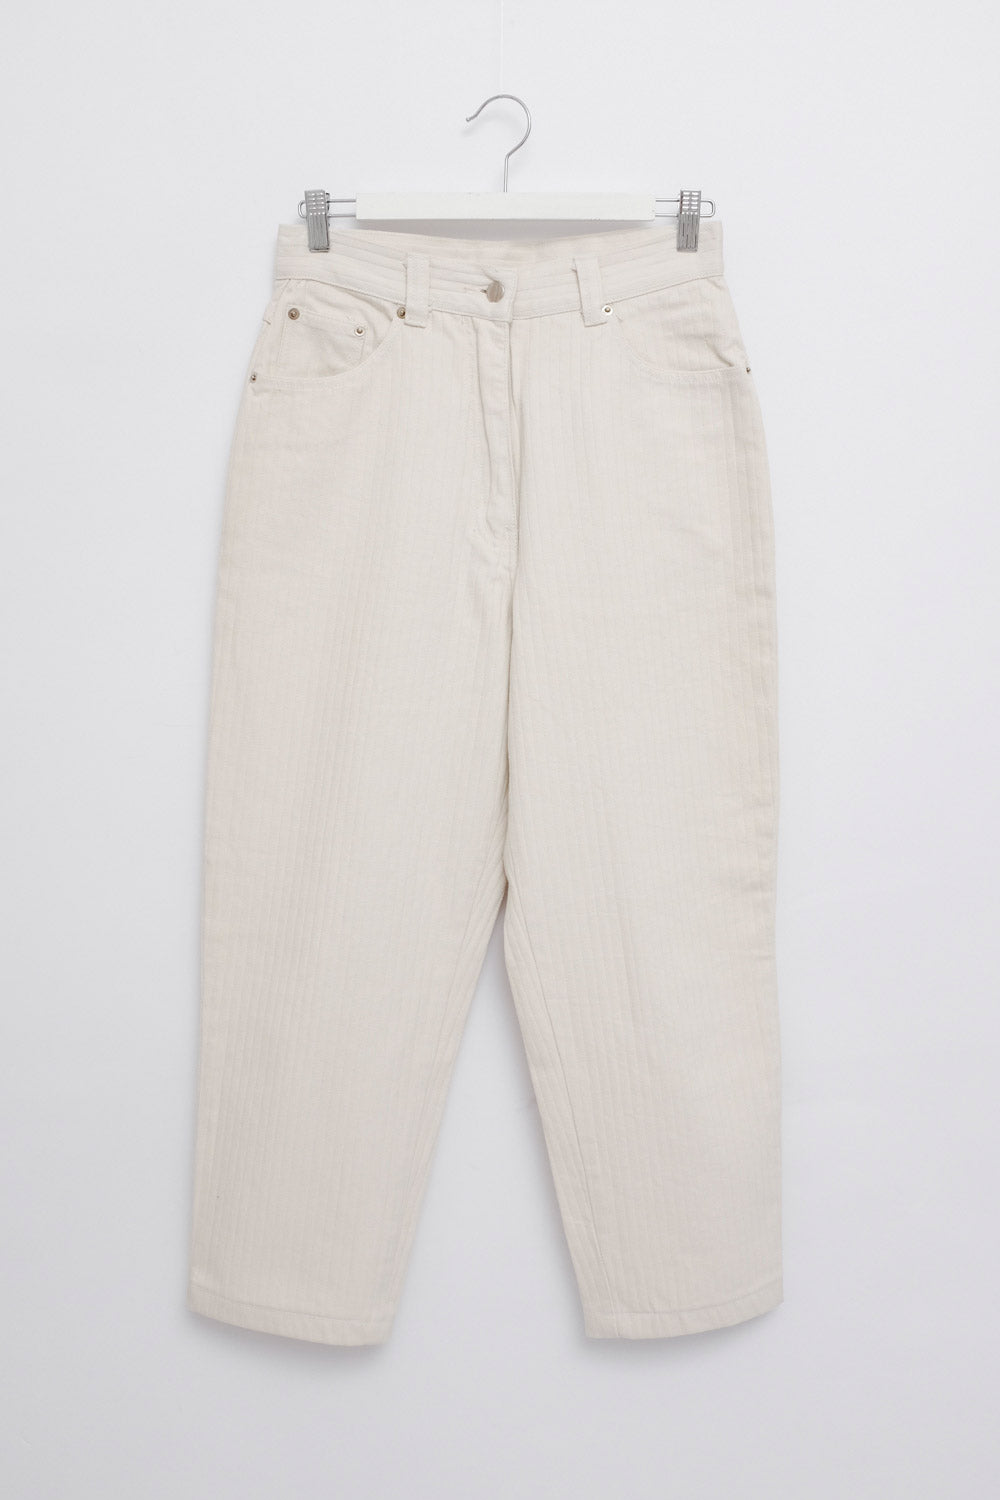 0022_RIB CREAM COTTON JEANS